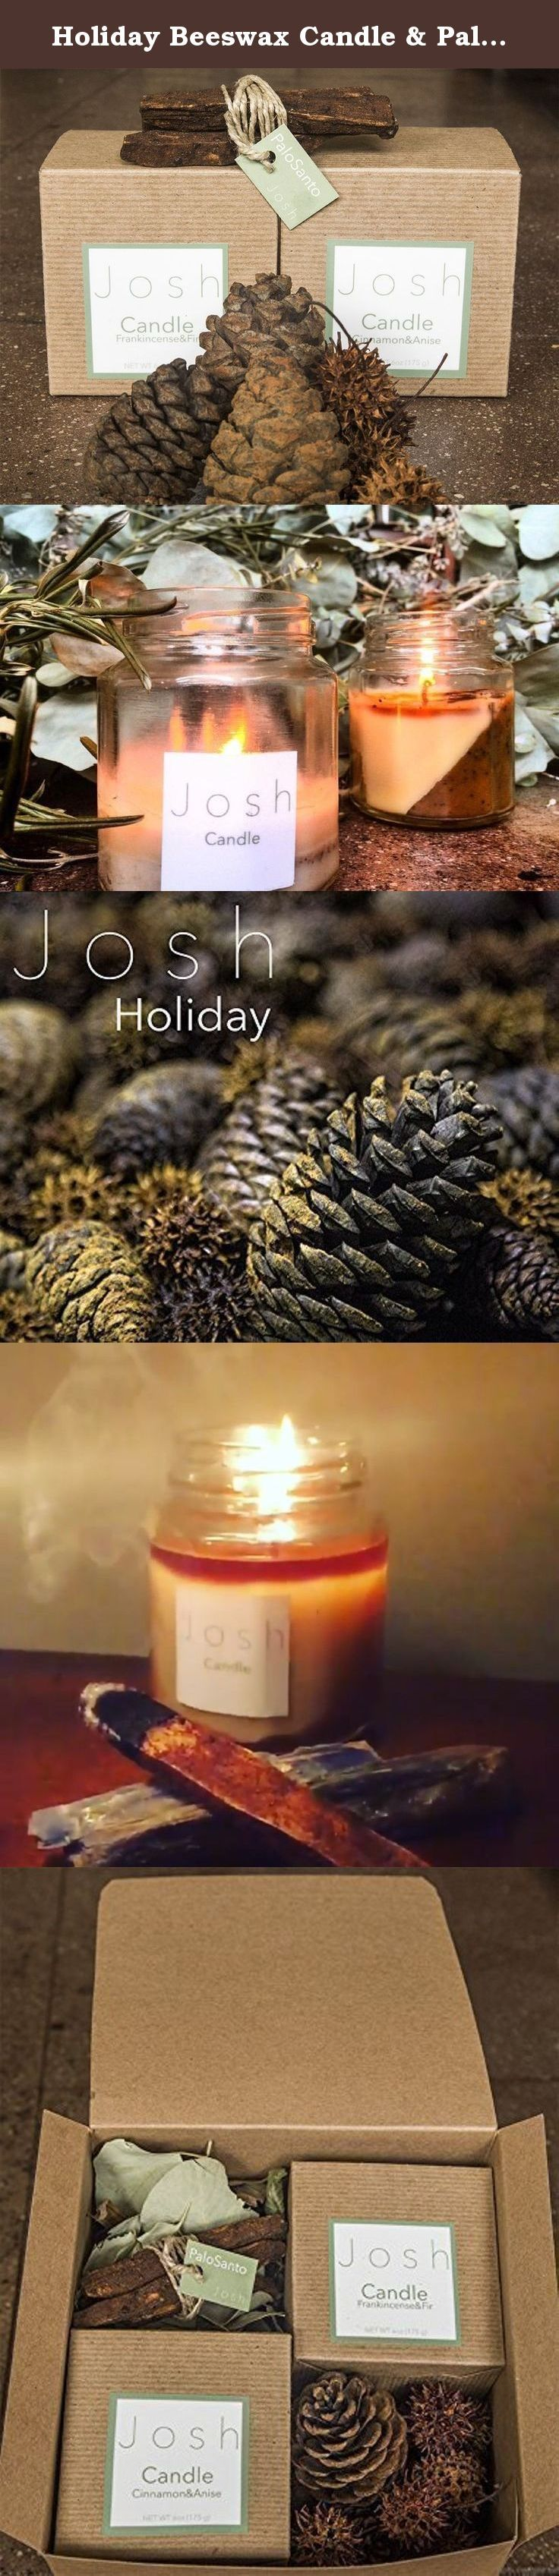 Holiday Beeswax Candle & Palo Santo Set with scented Pinecones and Pods ($27 savings). Frankincense&Fir Beeswax 6oz 50+hour burn candle Cinnamon&Anise Beeswax 6oz 50+hour burn candle 3 Palo Santo sticks treated with frankincense and sandalwood Scented Pinecones&Pods.